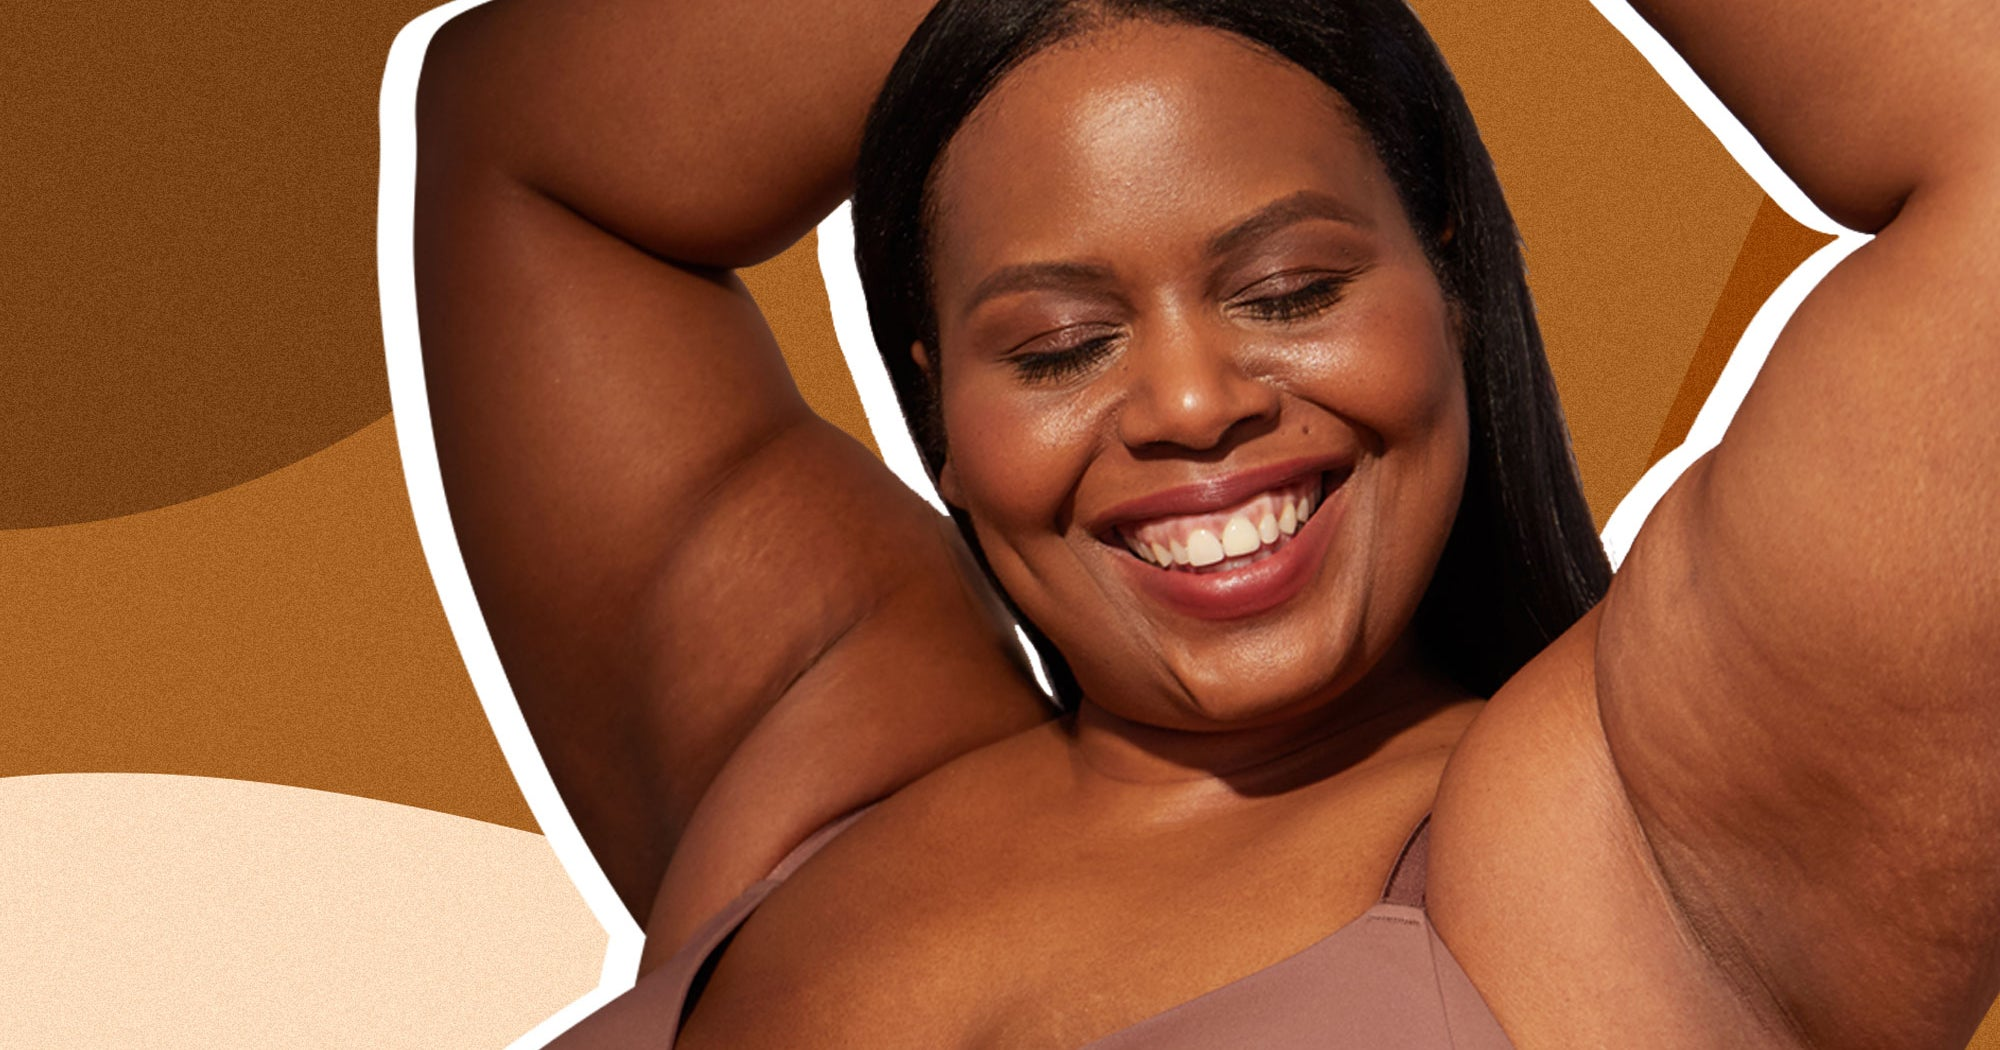 This Inclusive Canadian Brand Is Now Making Nude Lingerie For All